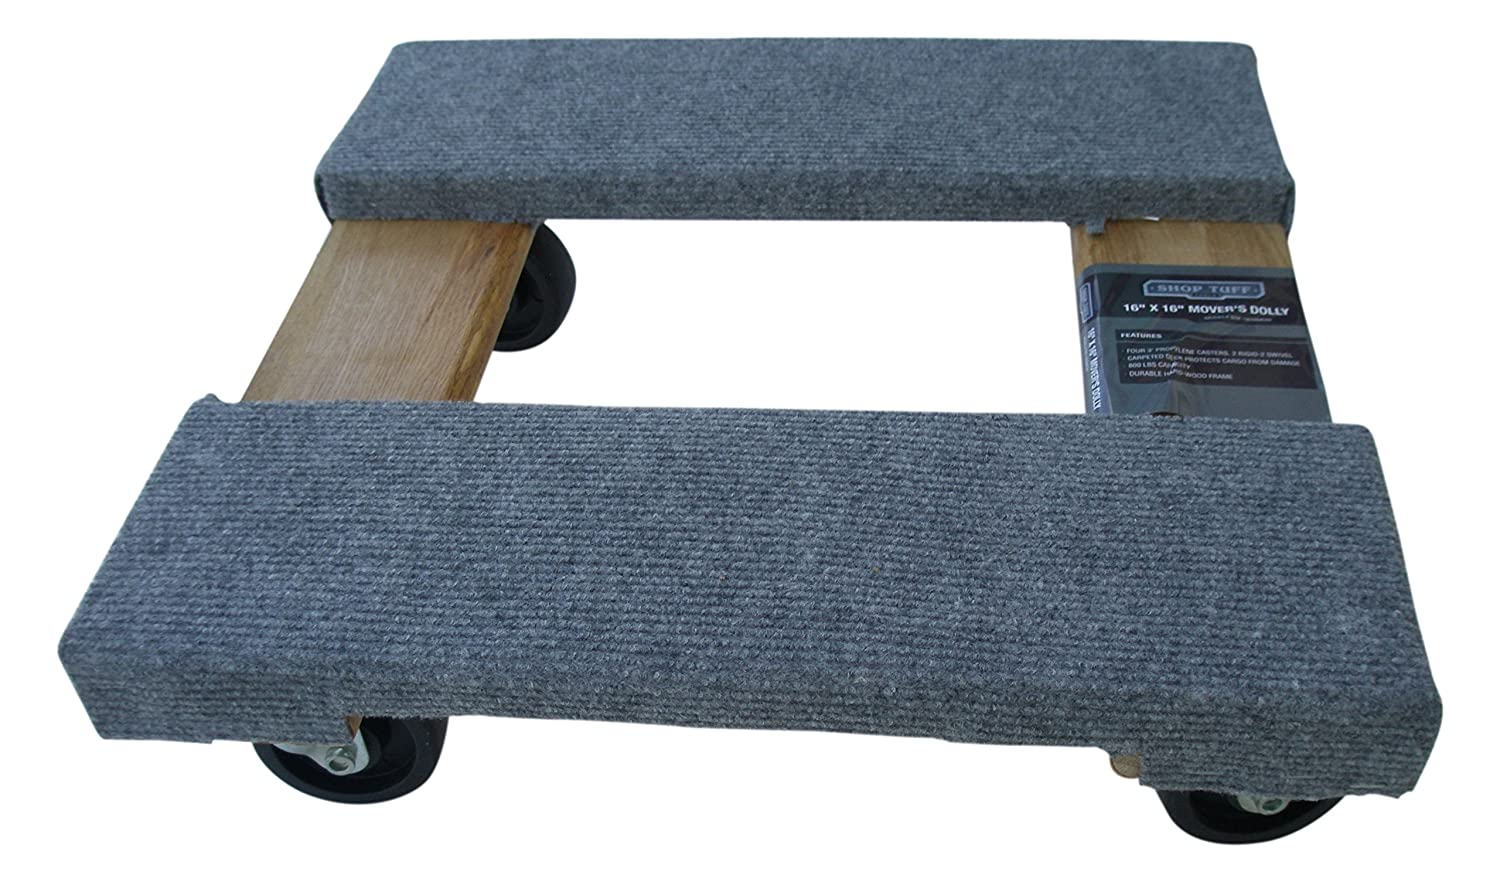 Shop Tuff STFMDW Movers Dolly X Amazoncom - Picnic table mover